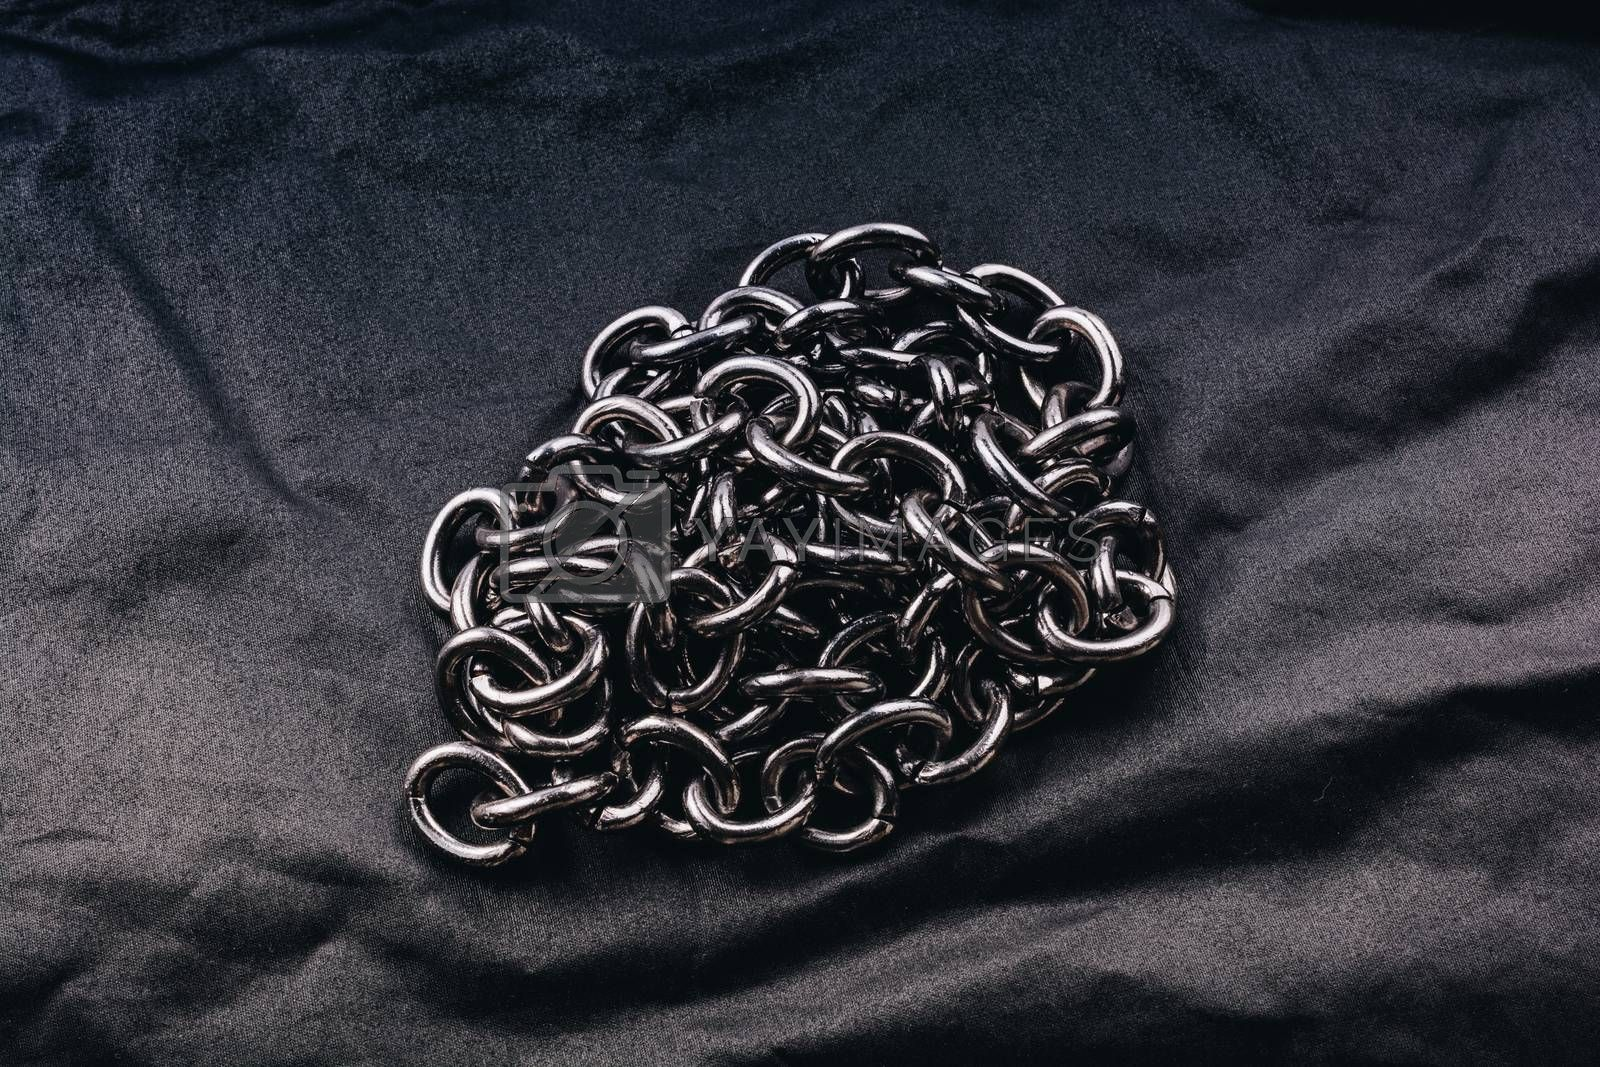 Roll of new metal chain found on the background